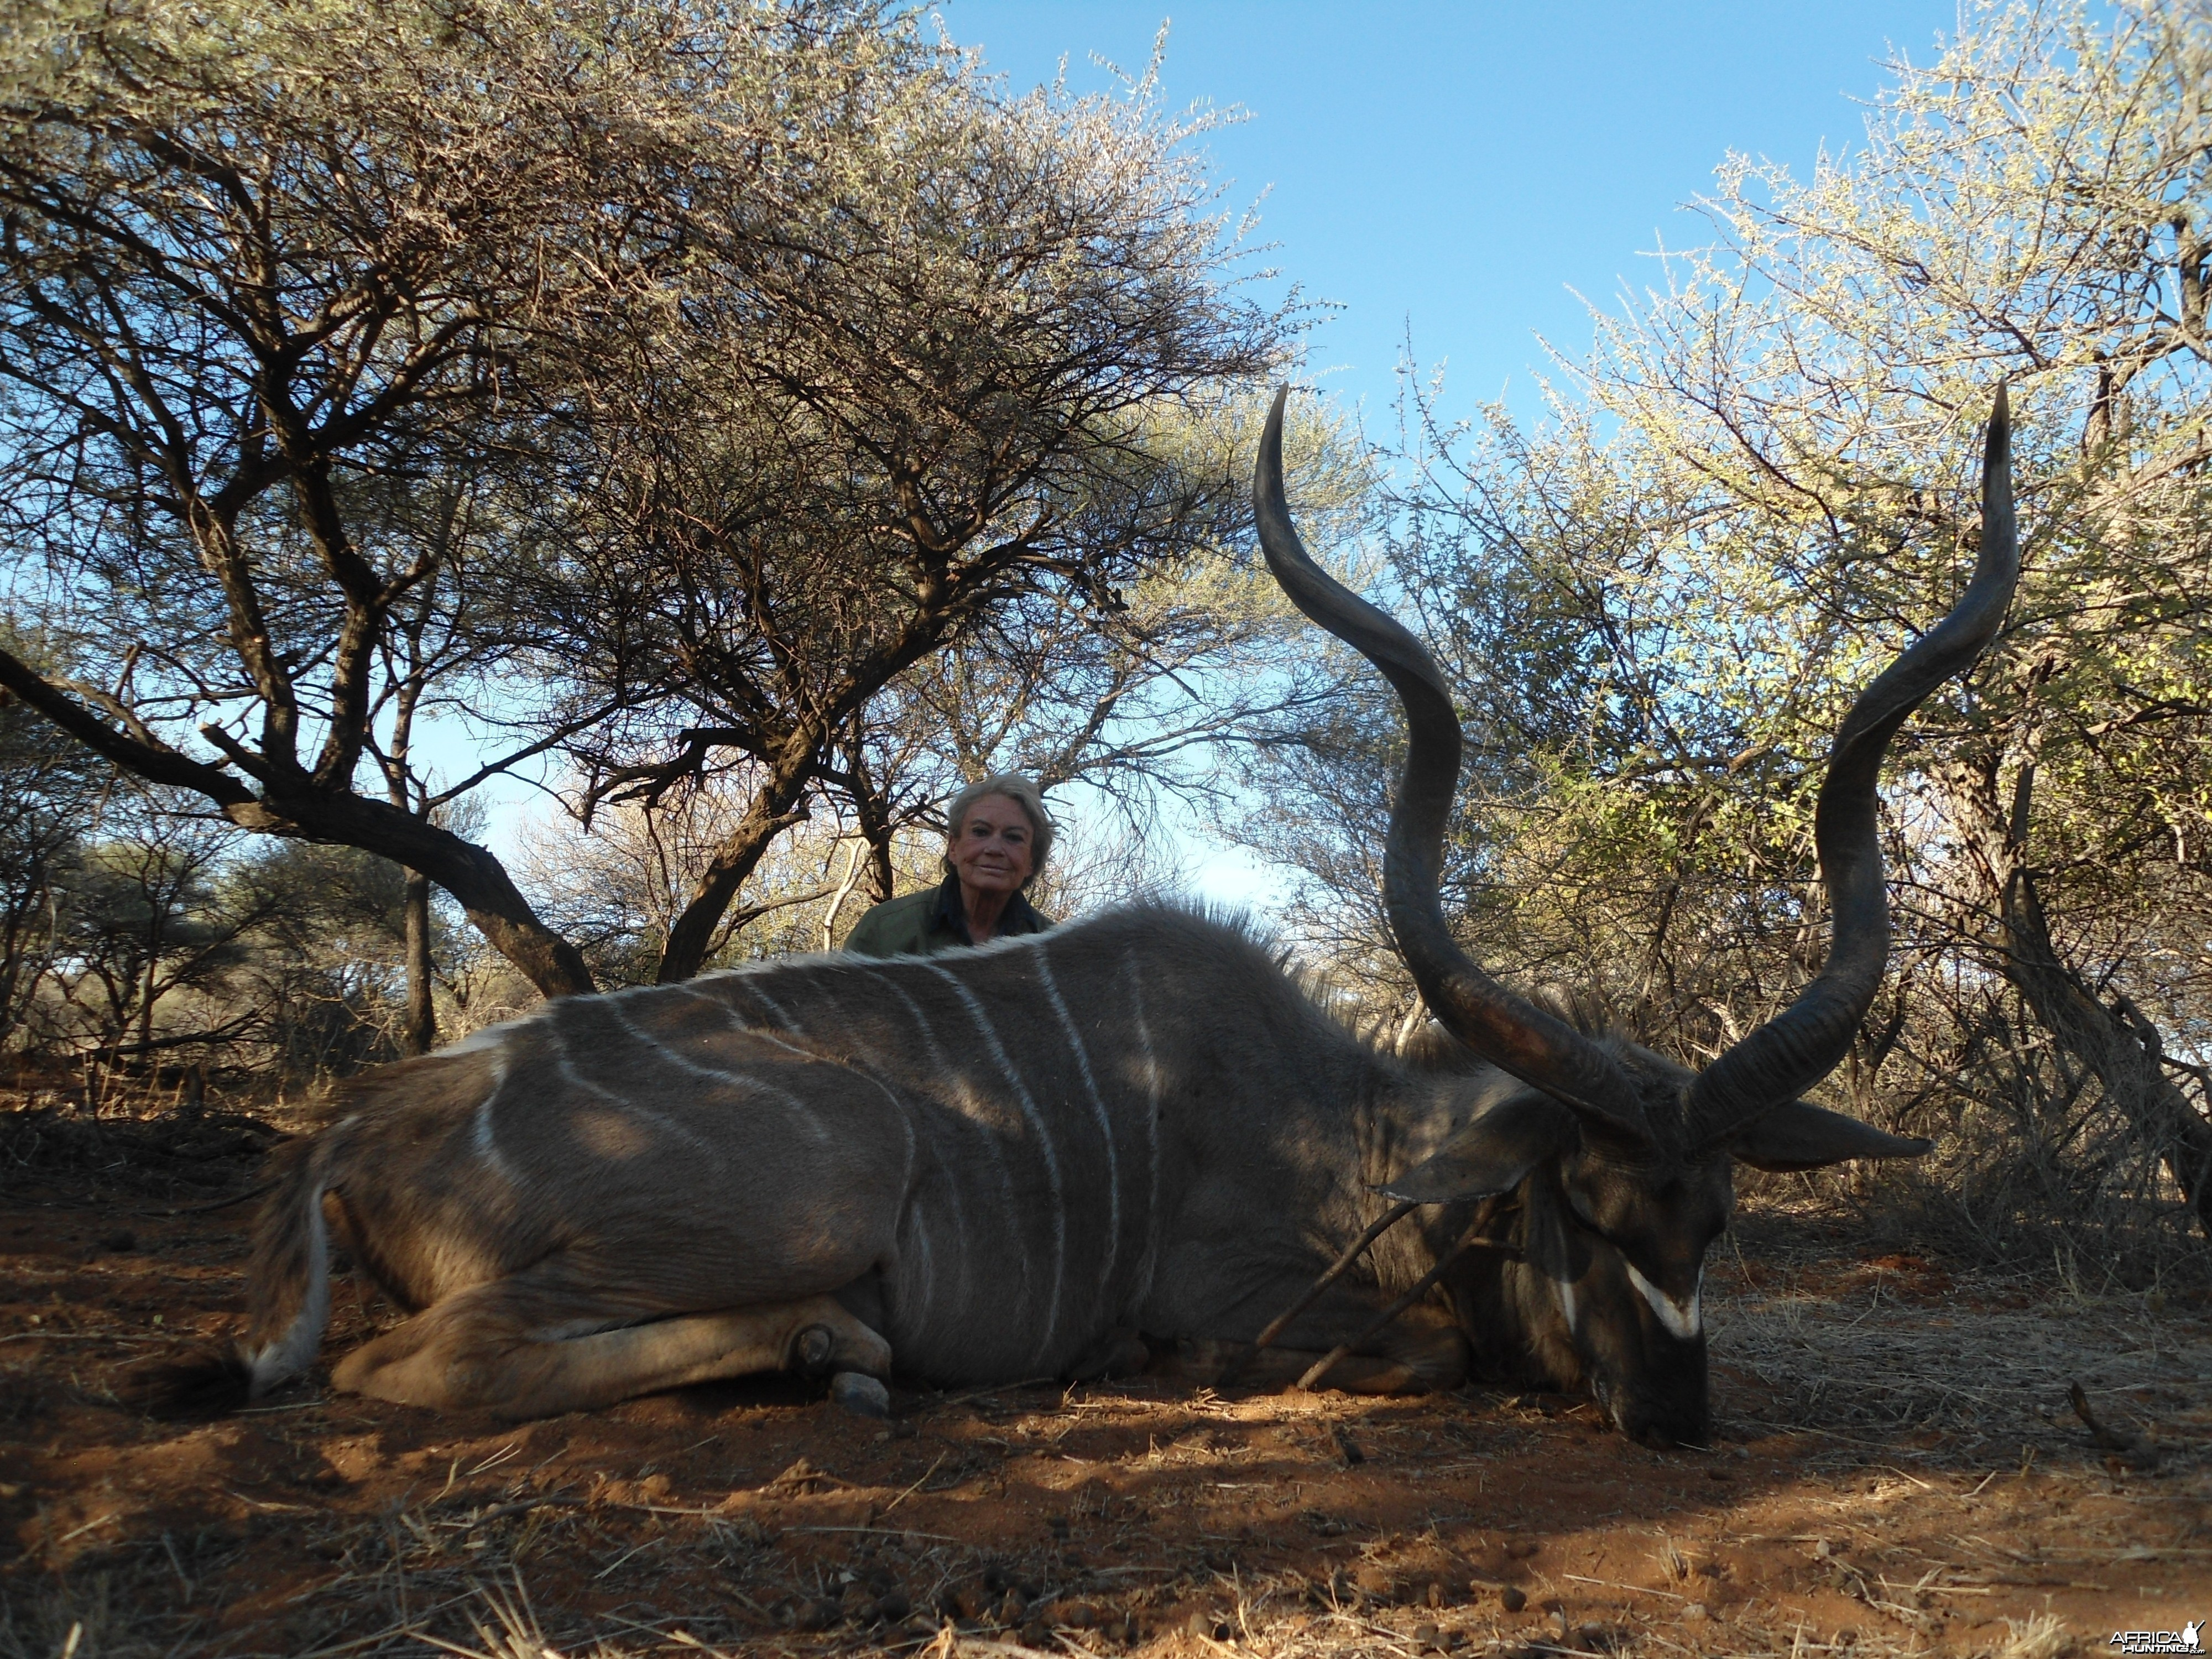 Greater Kudu hunted with Ozondjahe Hunting Safaris in Namibia